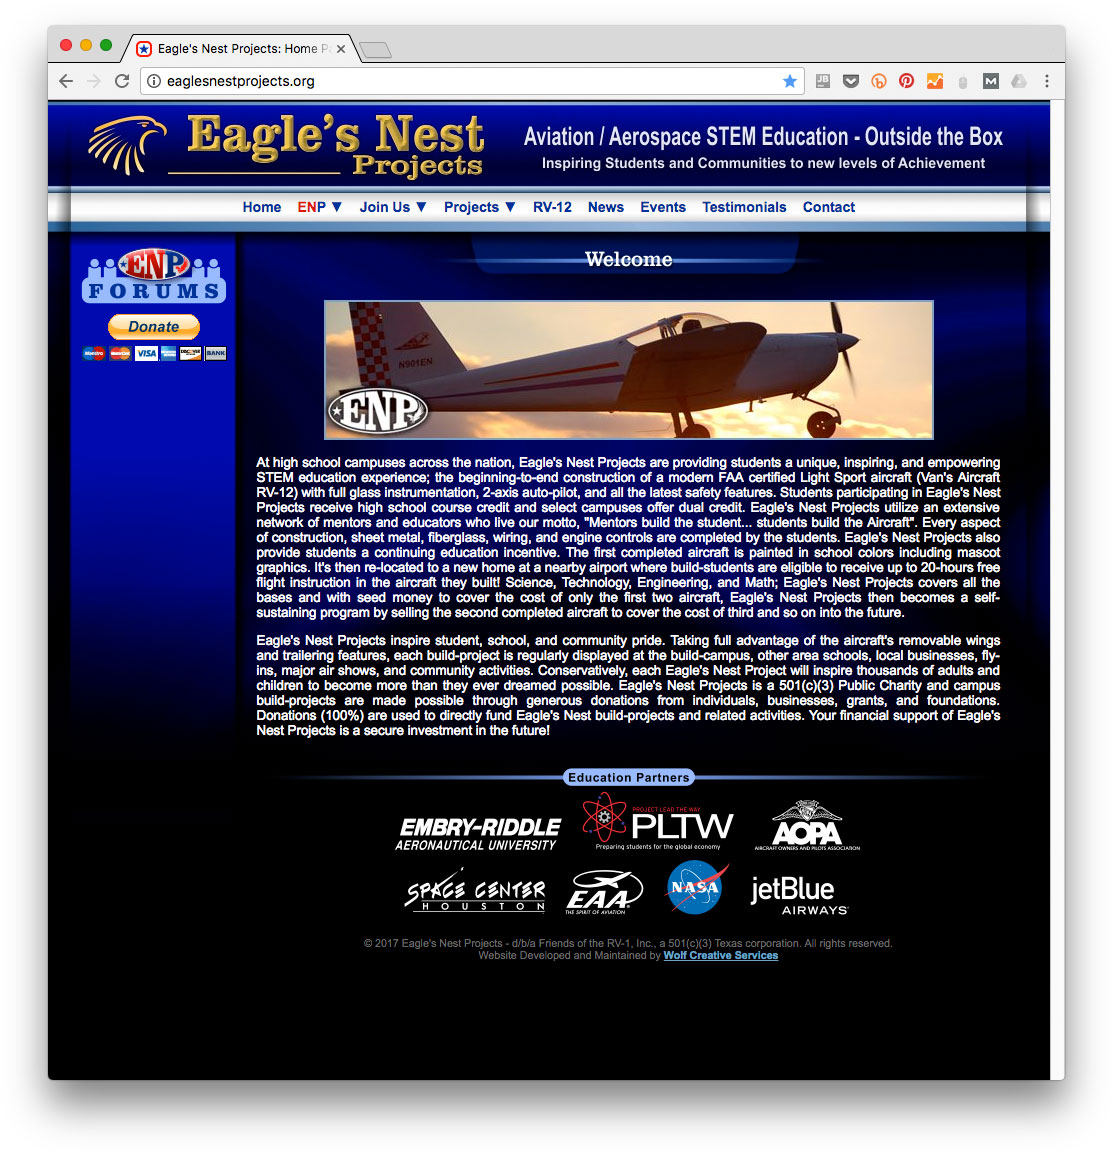 Eagle's Nest Projects website